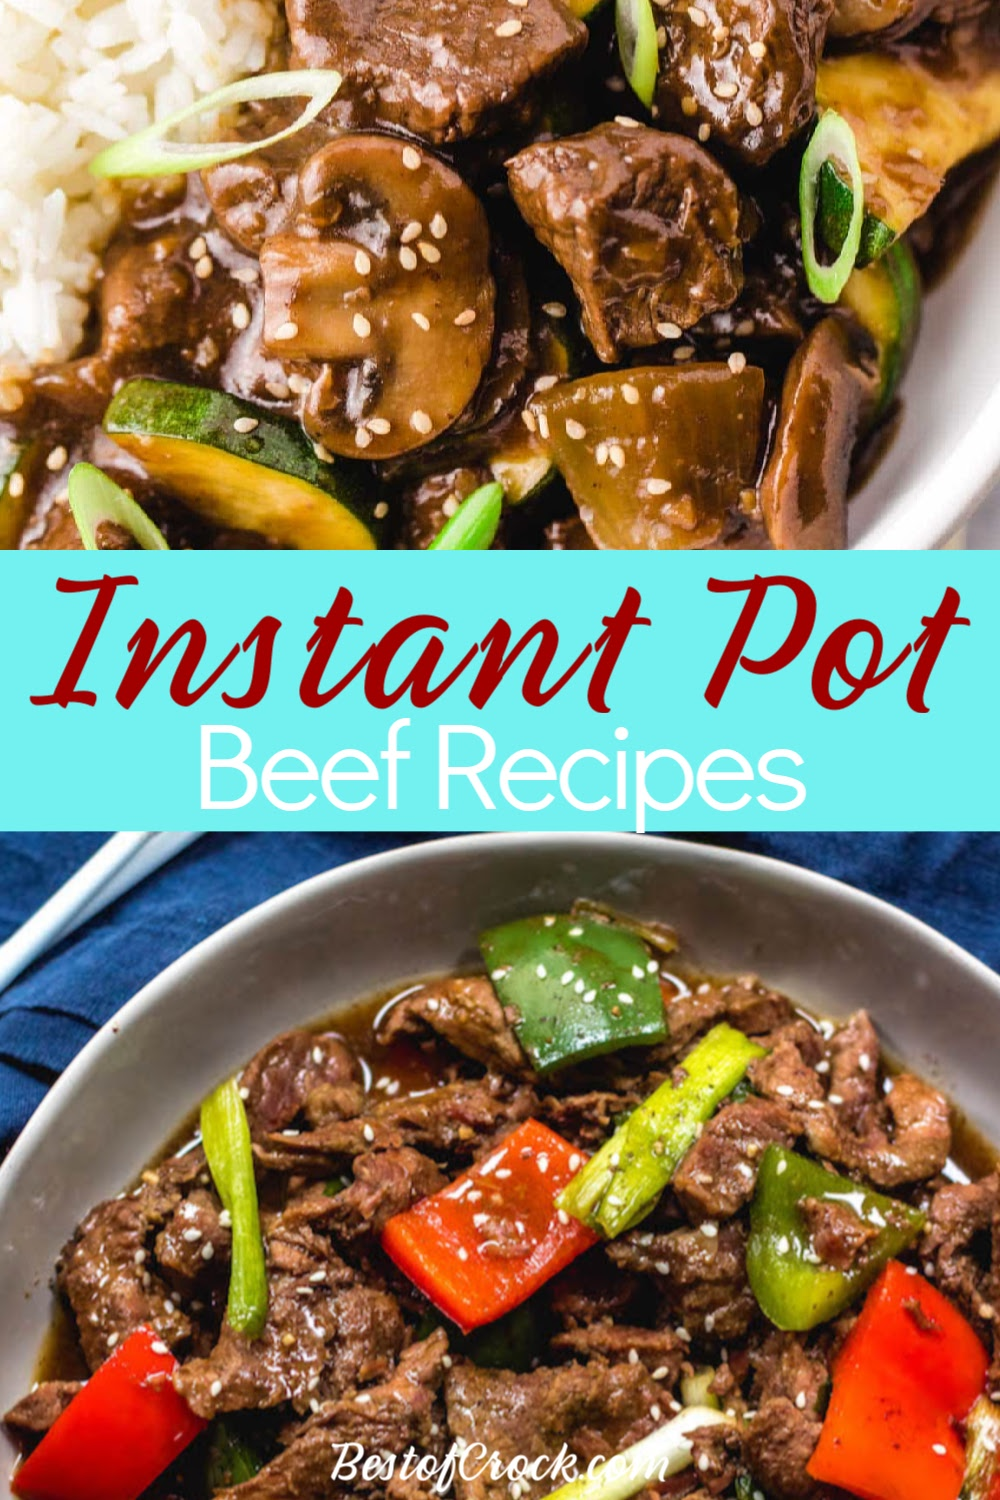 Healthy Instant Pot meals with beef are easy pressure cooker recipes that you can make for family dinners or large gatherings. Beef Pressure Cooker Recipes | Pressure Cooker Dinner Recipes | Instant Pot Dinner Recipes | Family Dinner Recipes with Beef | Beef Recipes for Parties | Dinner Party Recipes #instantpot #beef via @bestofcrock